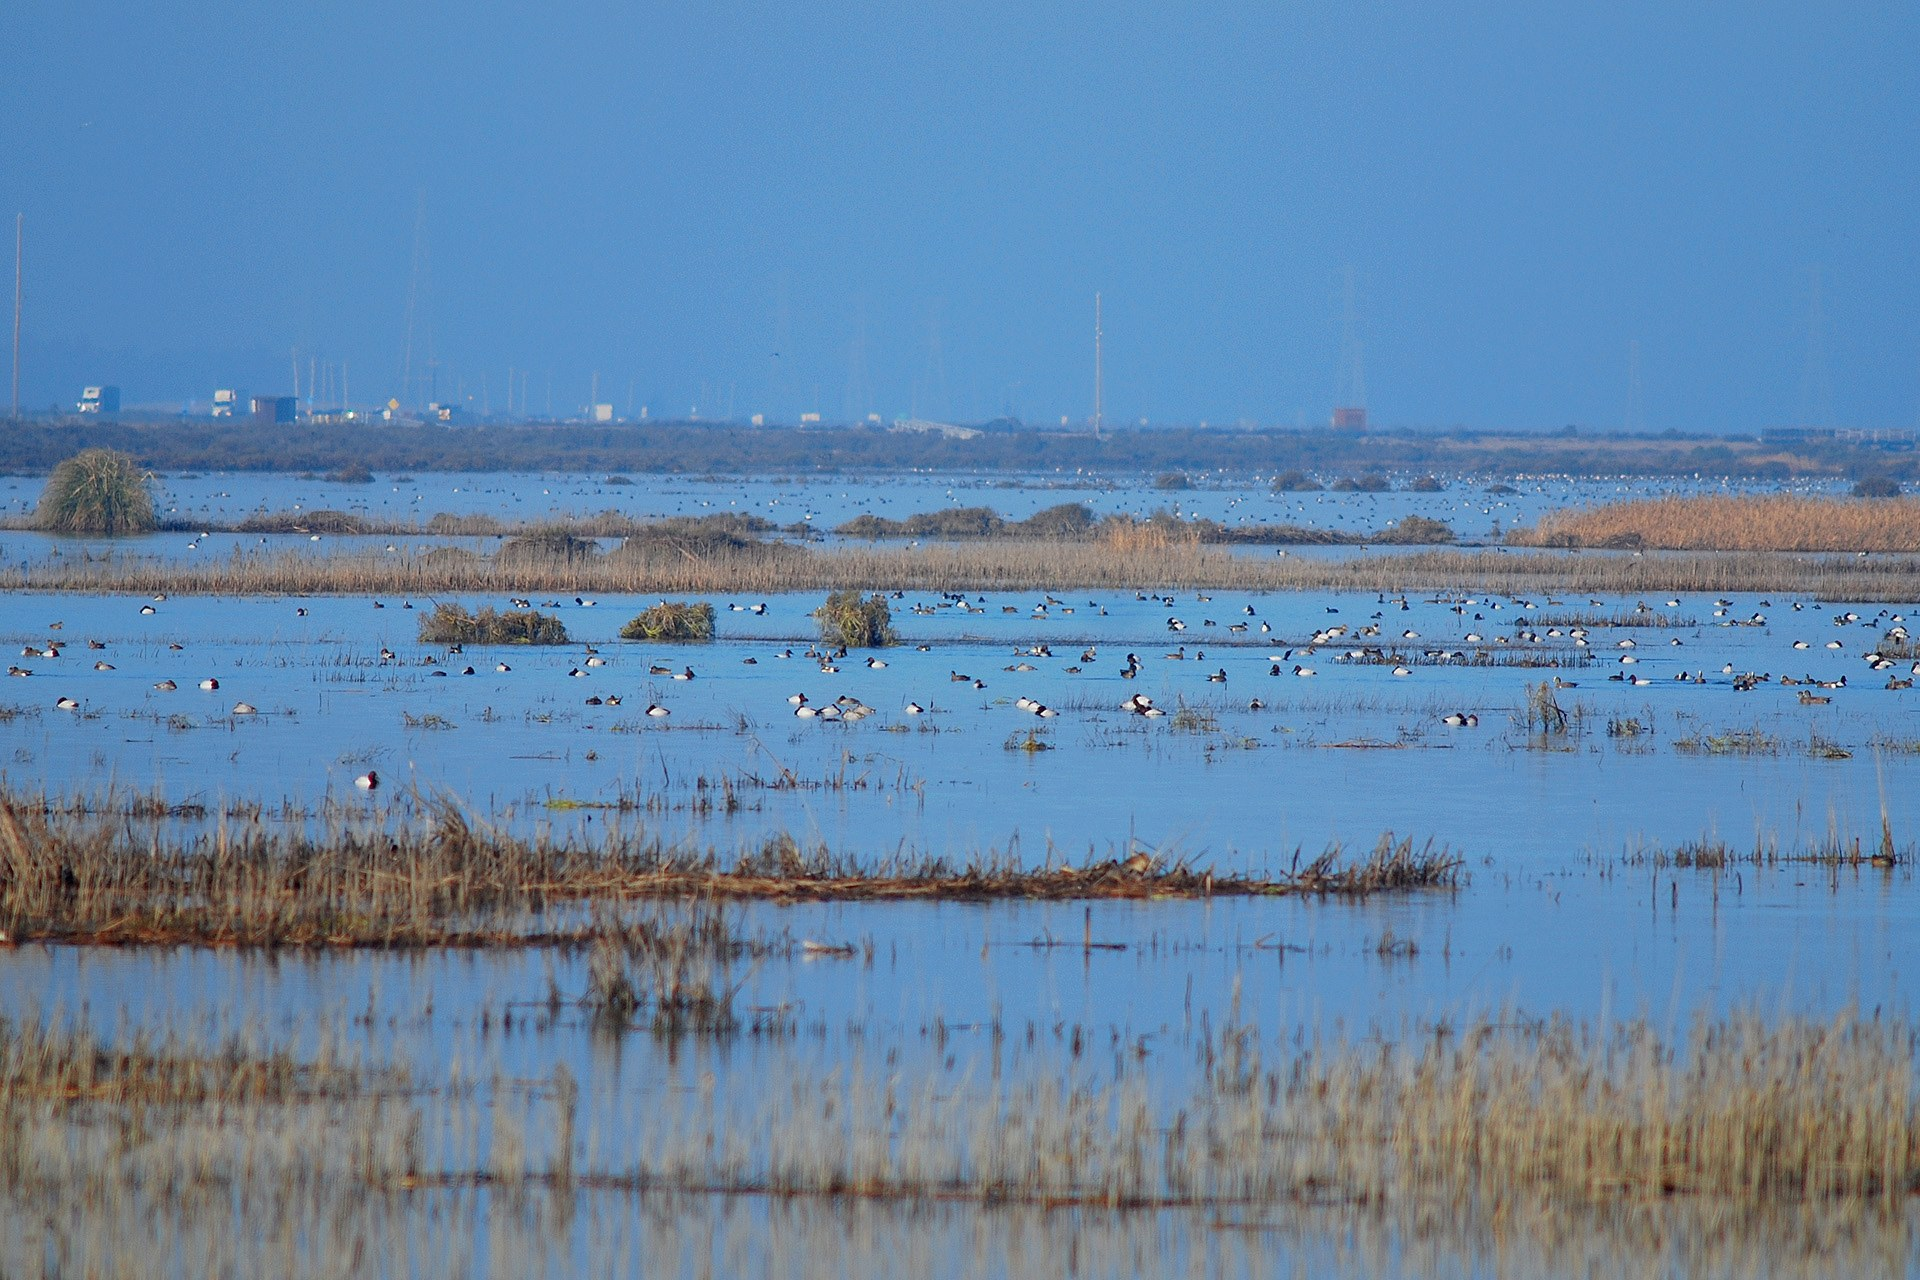 Ducks are seen at the Cullinan Ranch Unit in San Pablo Bay Refuge in a photo posted on the Facebook page for the San Francisco Bay NWR Complex in February 2015.